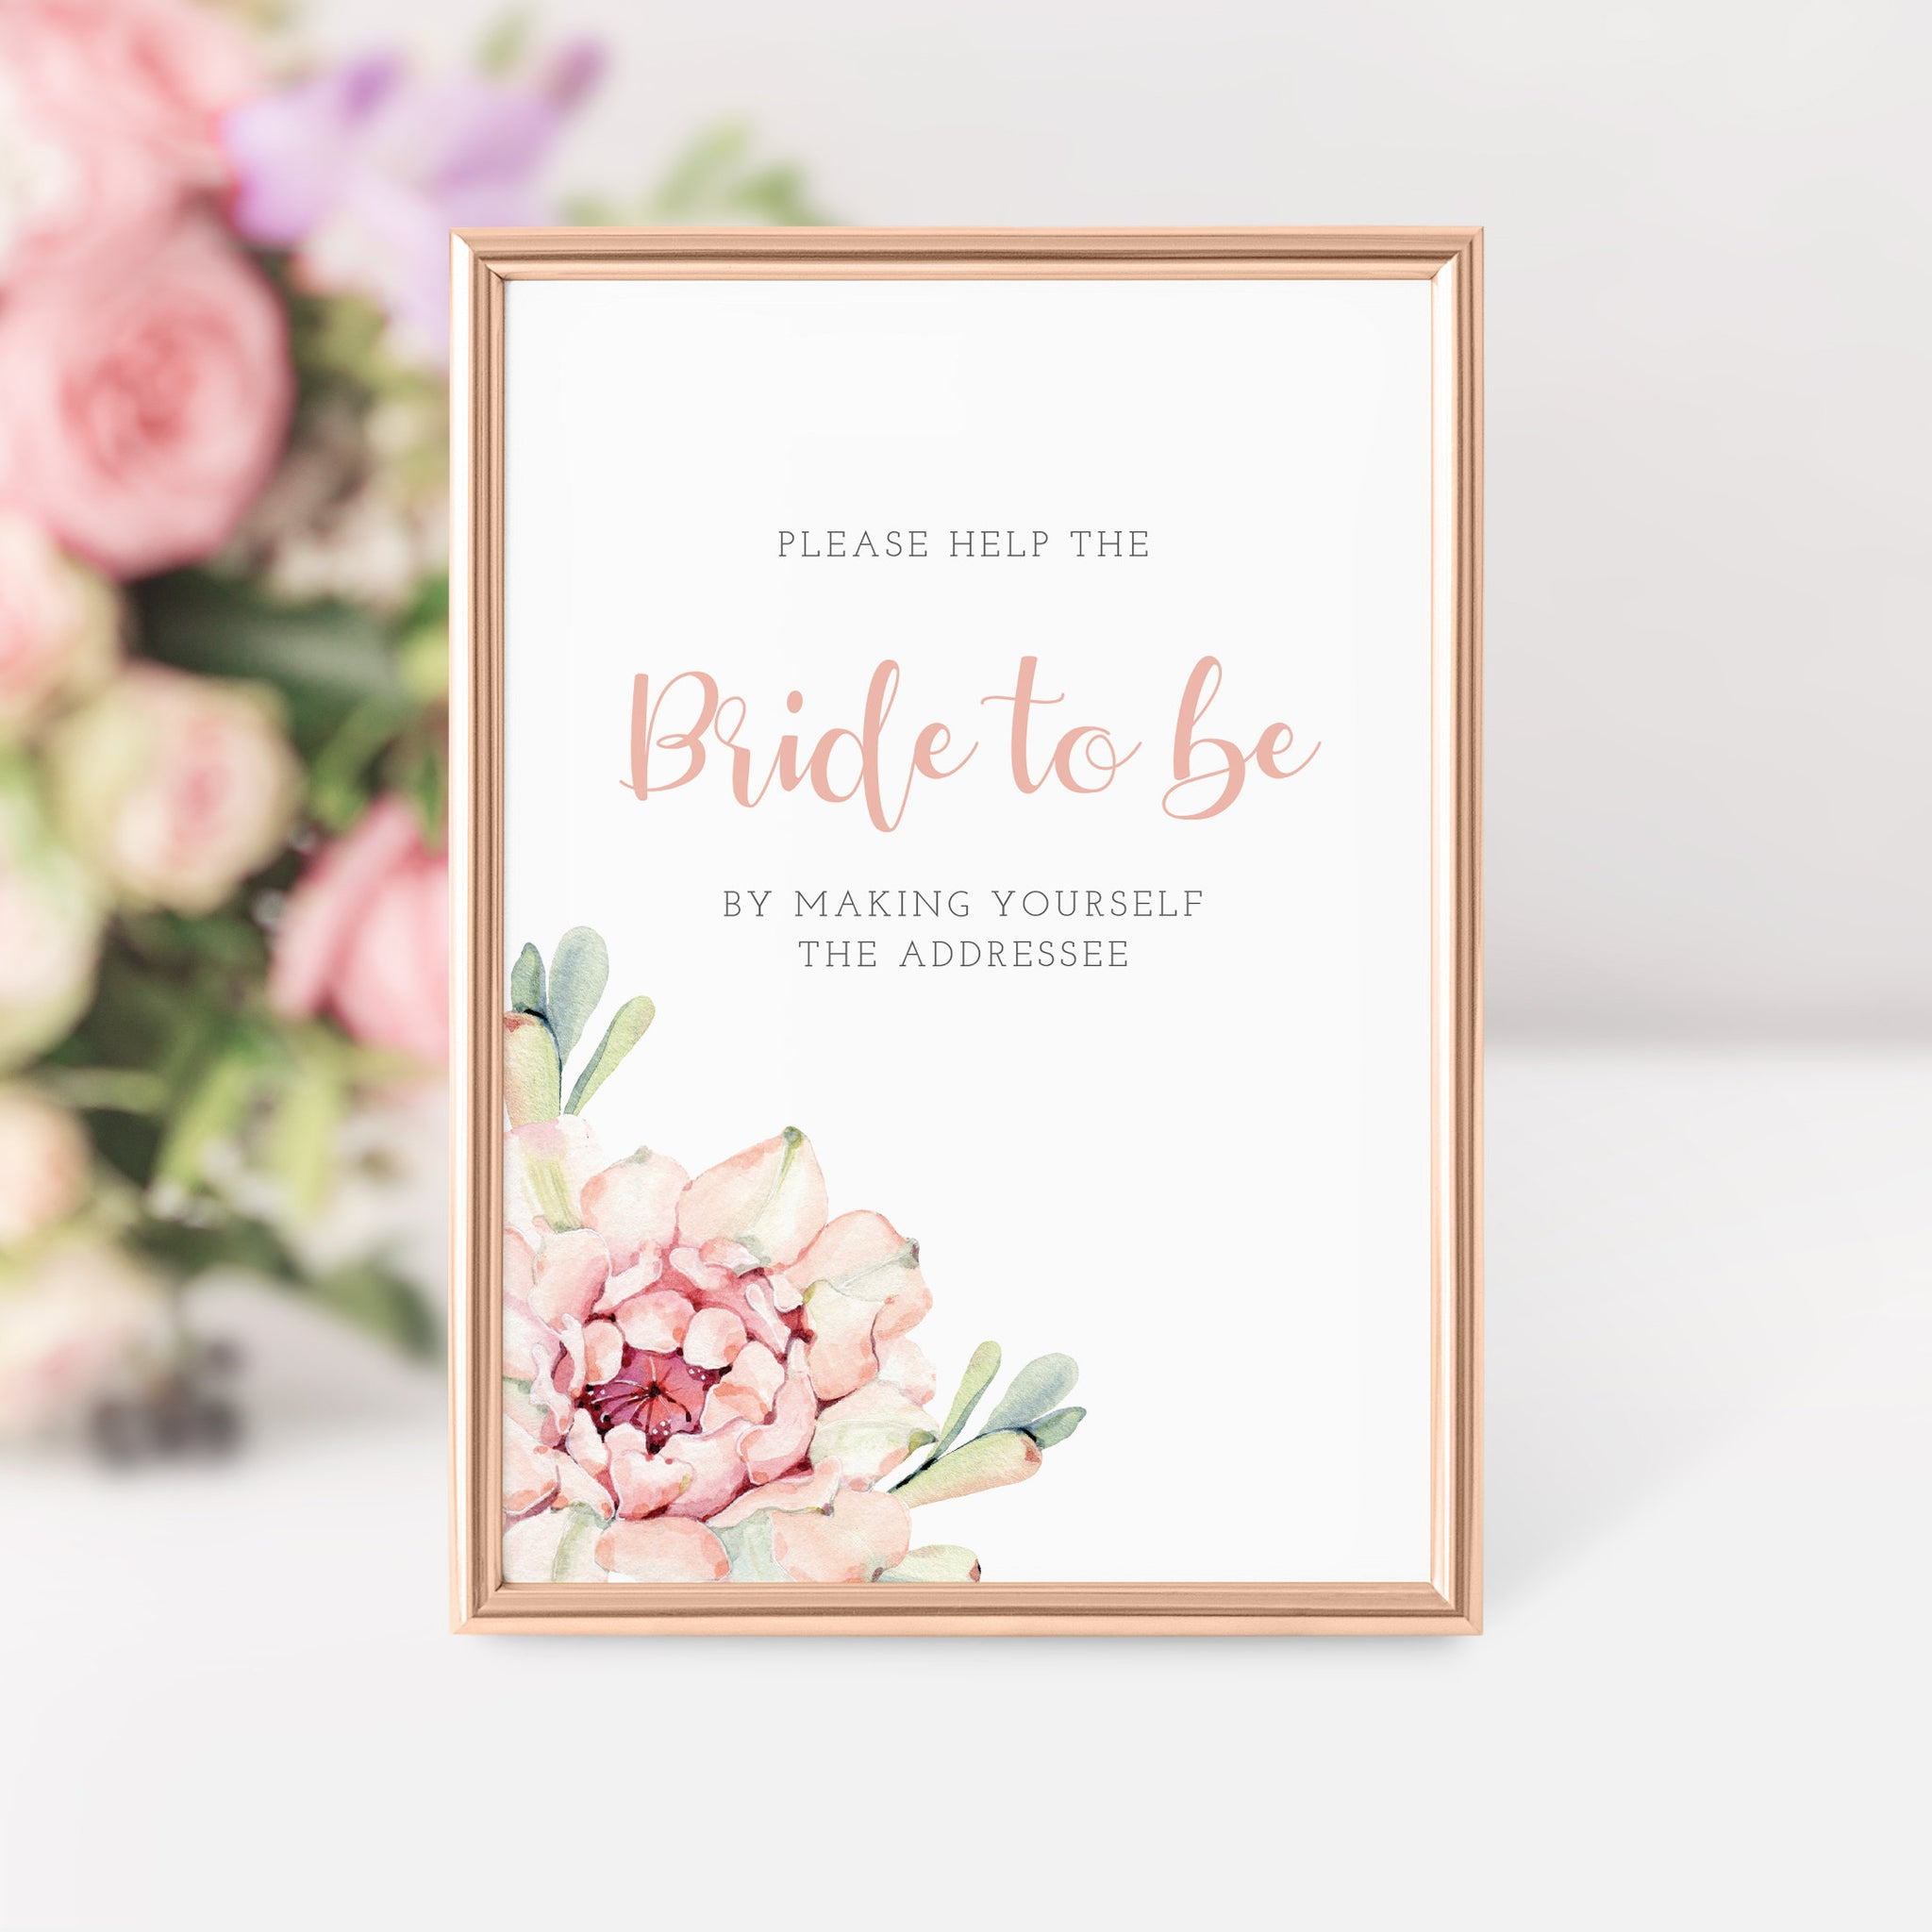 Succulent Bridal Shower Address an Envelope Sign Printable, Cactus Bridal Shower Table Signs, DIGITAL DOWNLOAD - CS100 - @PlumPolkaDot